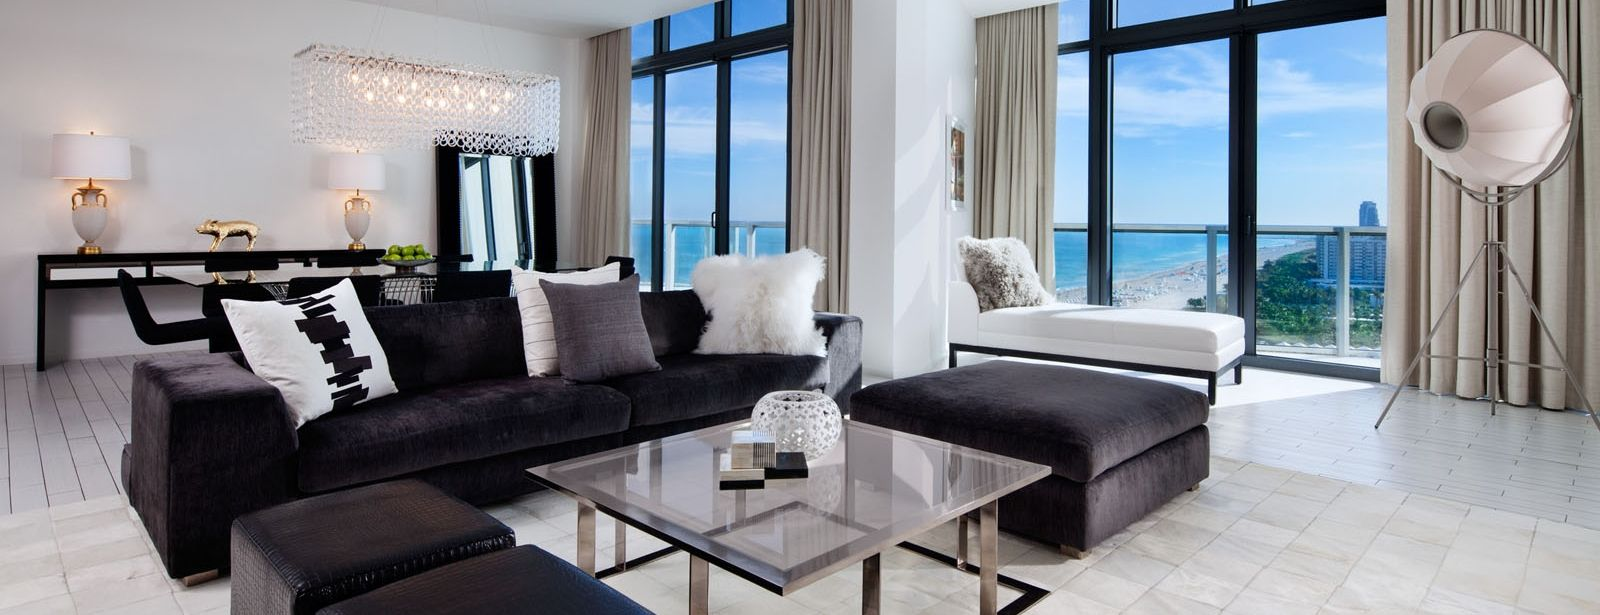 Hotel Suites in Miami